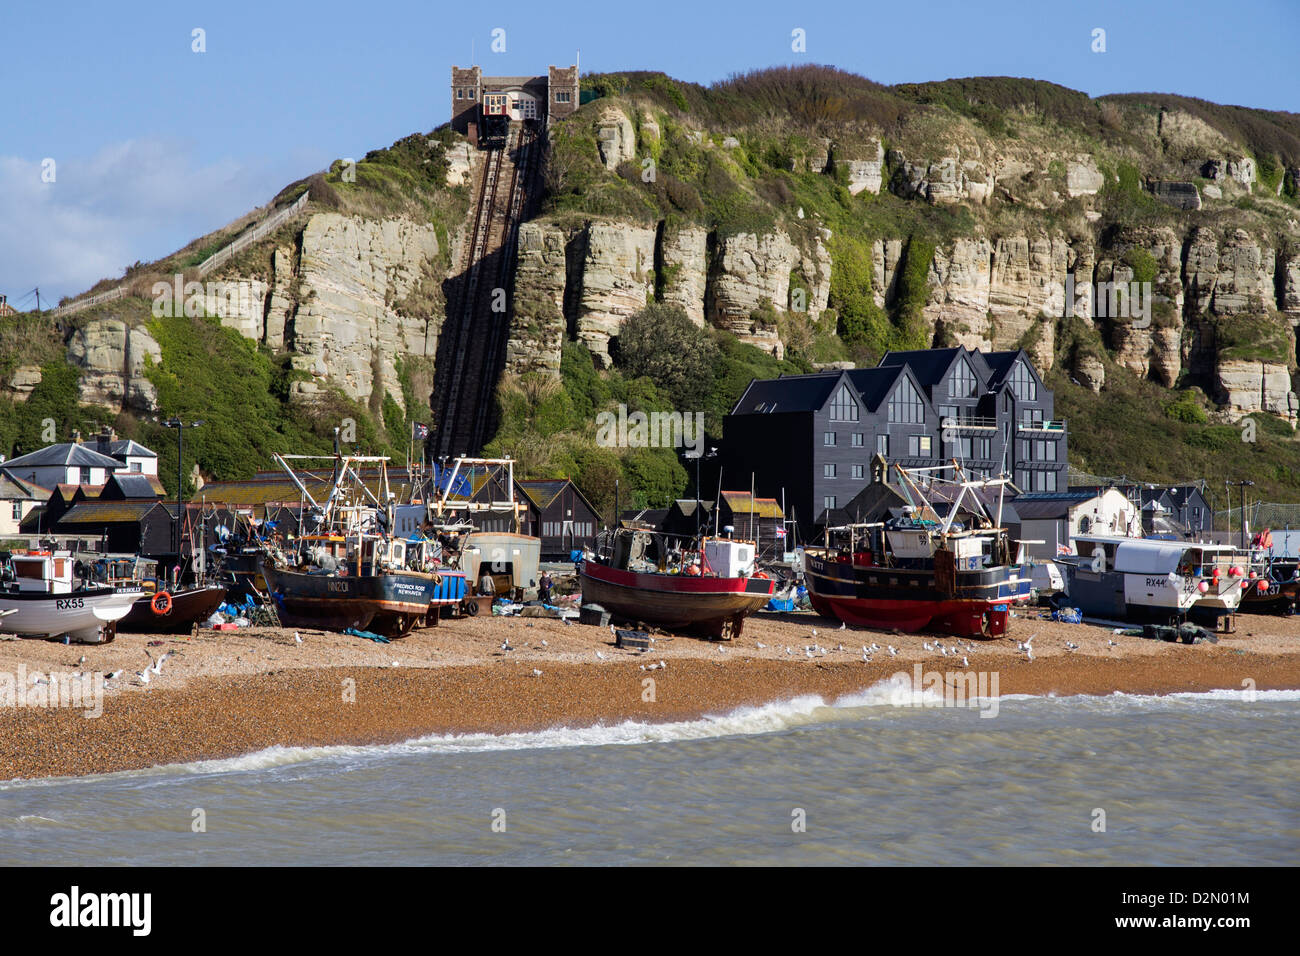 Fishing fleet drawn up on beach and East Hill lift, Hastings, Sussex, England, United Kingdom, Europe - Stock Image